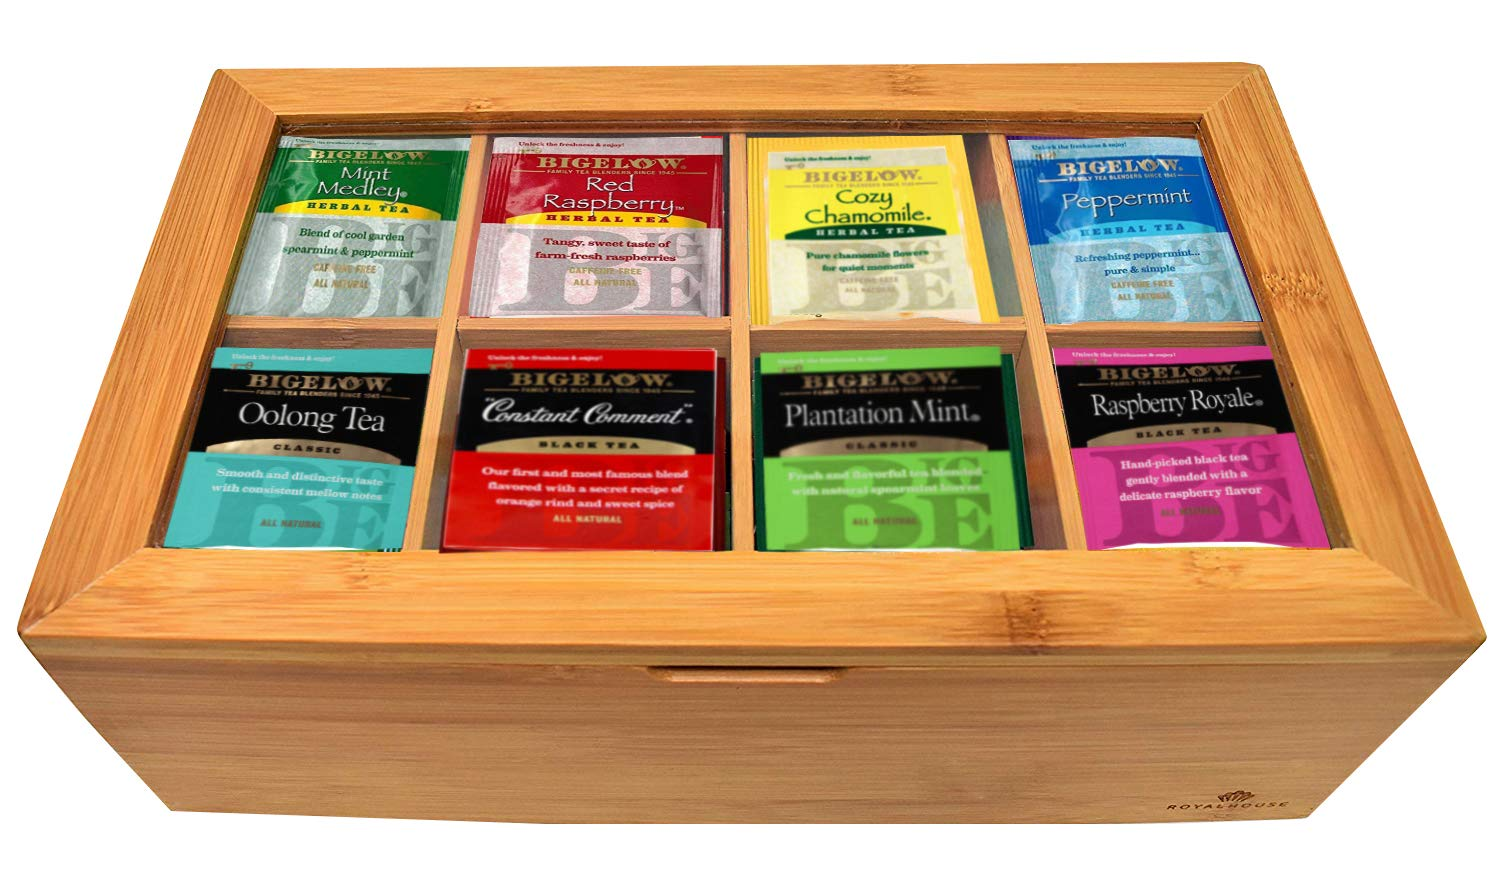 CDM product Bigalow Tea Bags Sampler Assortment Box - 80 COUNT - Perfect Variety Pack in Bamboo Gift Box - Gift for Family, Friends, Coworkers - English Breakfast, English Teatime, Green Tea, Early Grey and more small thumbnail image